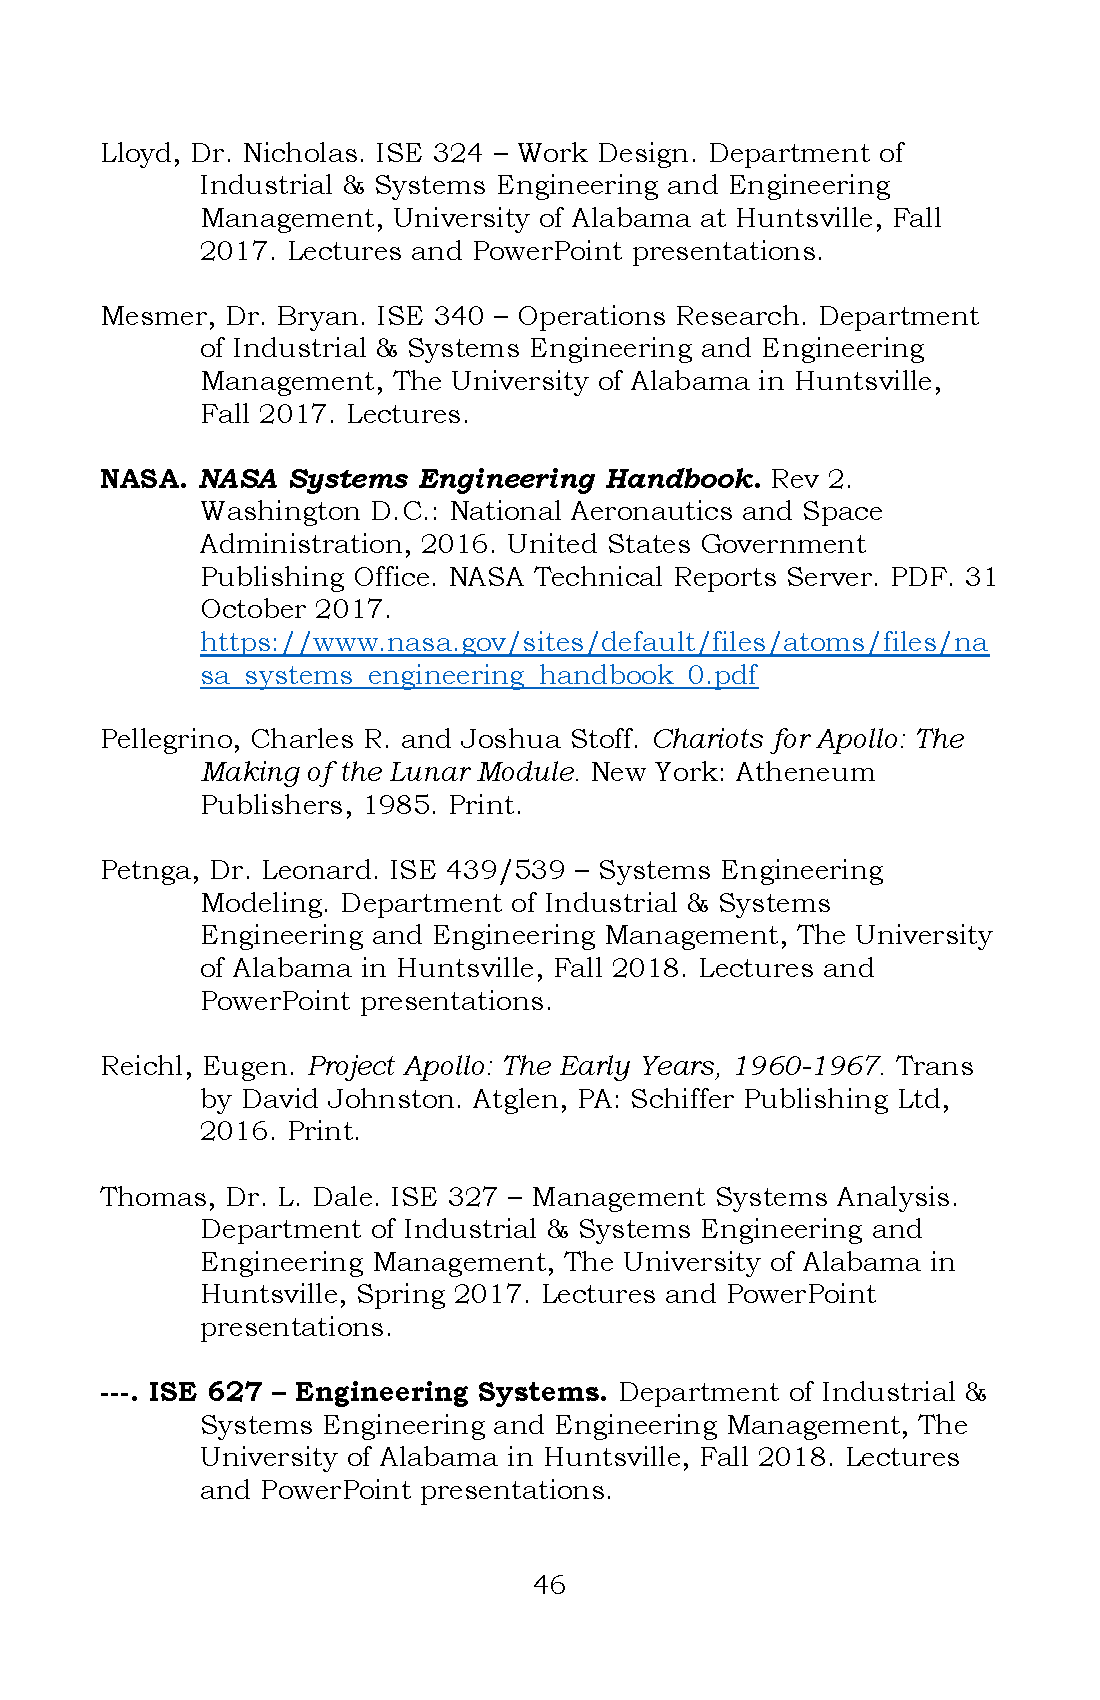 Integrated A Student S Guide To Systems Engineering Honors Capstones Projects And Theses Uah Digital Projects